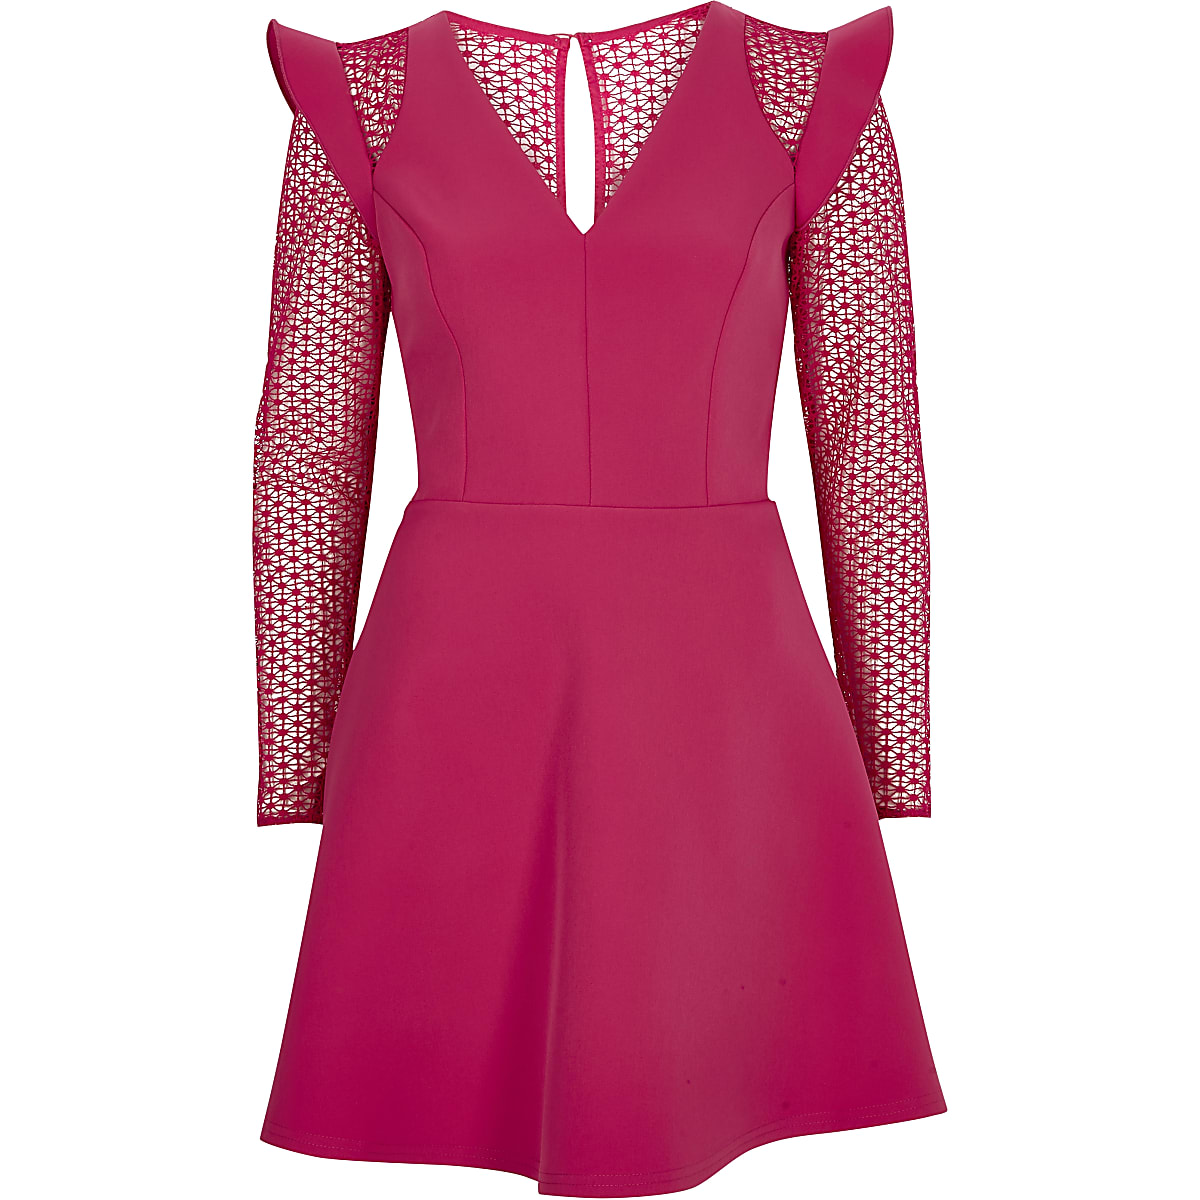 Bright pink lace insert frill skater dress